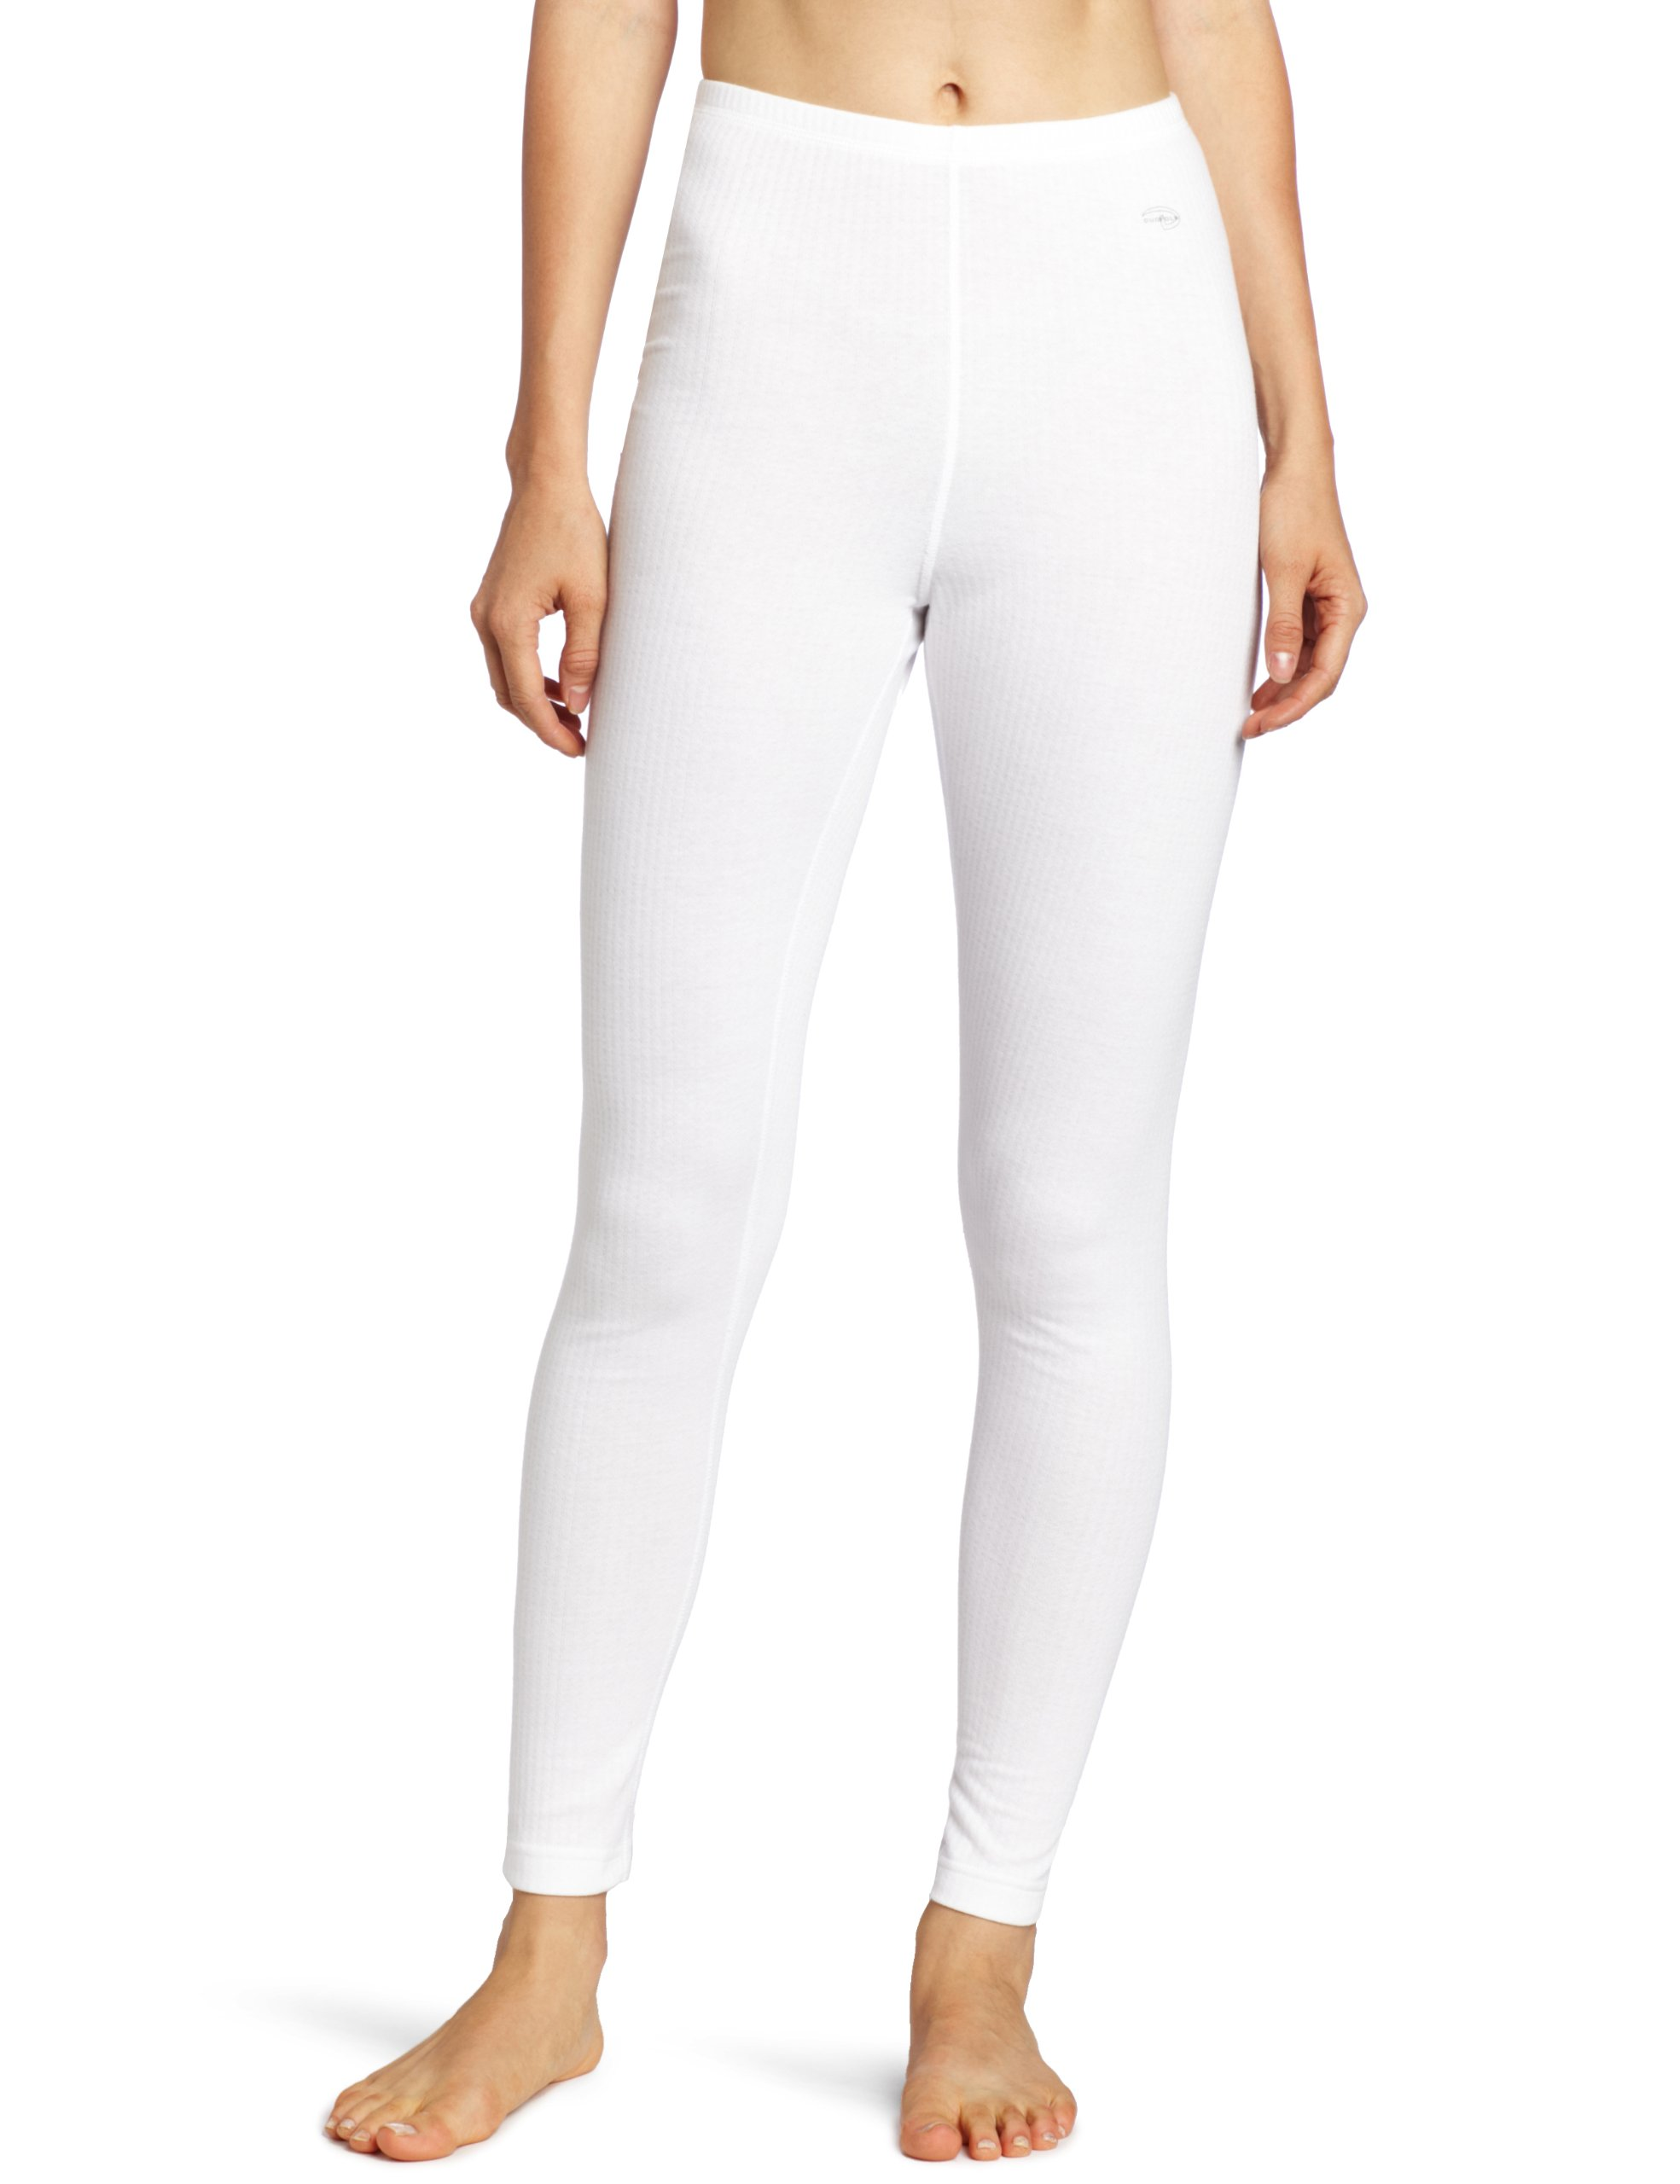 Duofold Women's Mid Weight Wicking Thermal Leggings, White, Medium